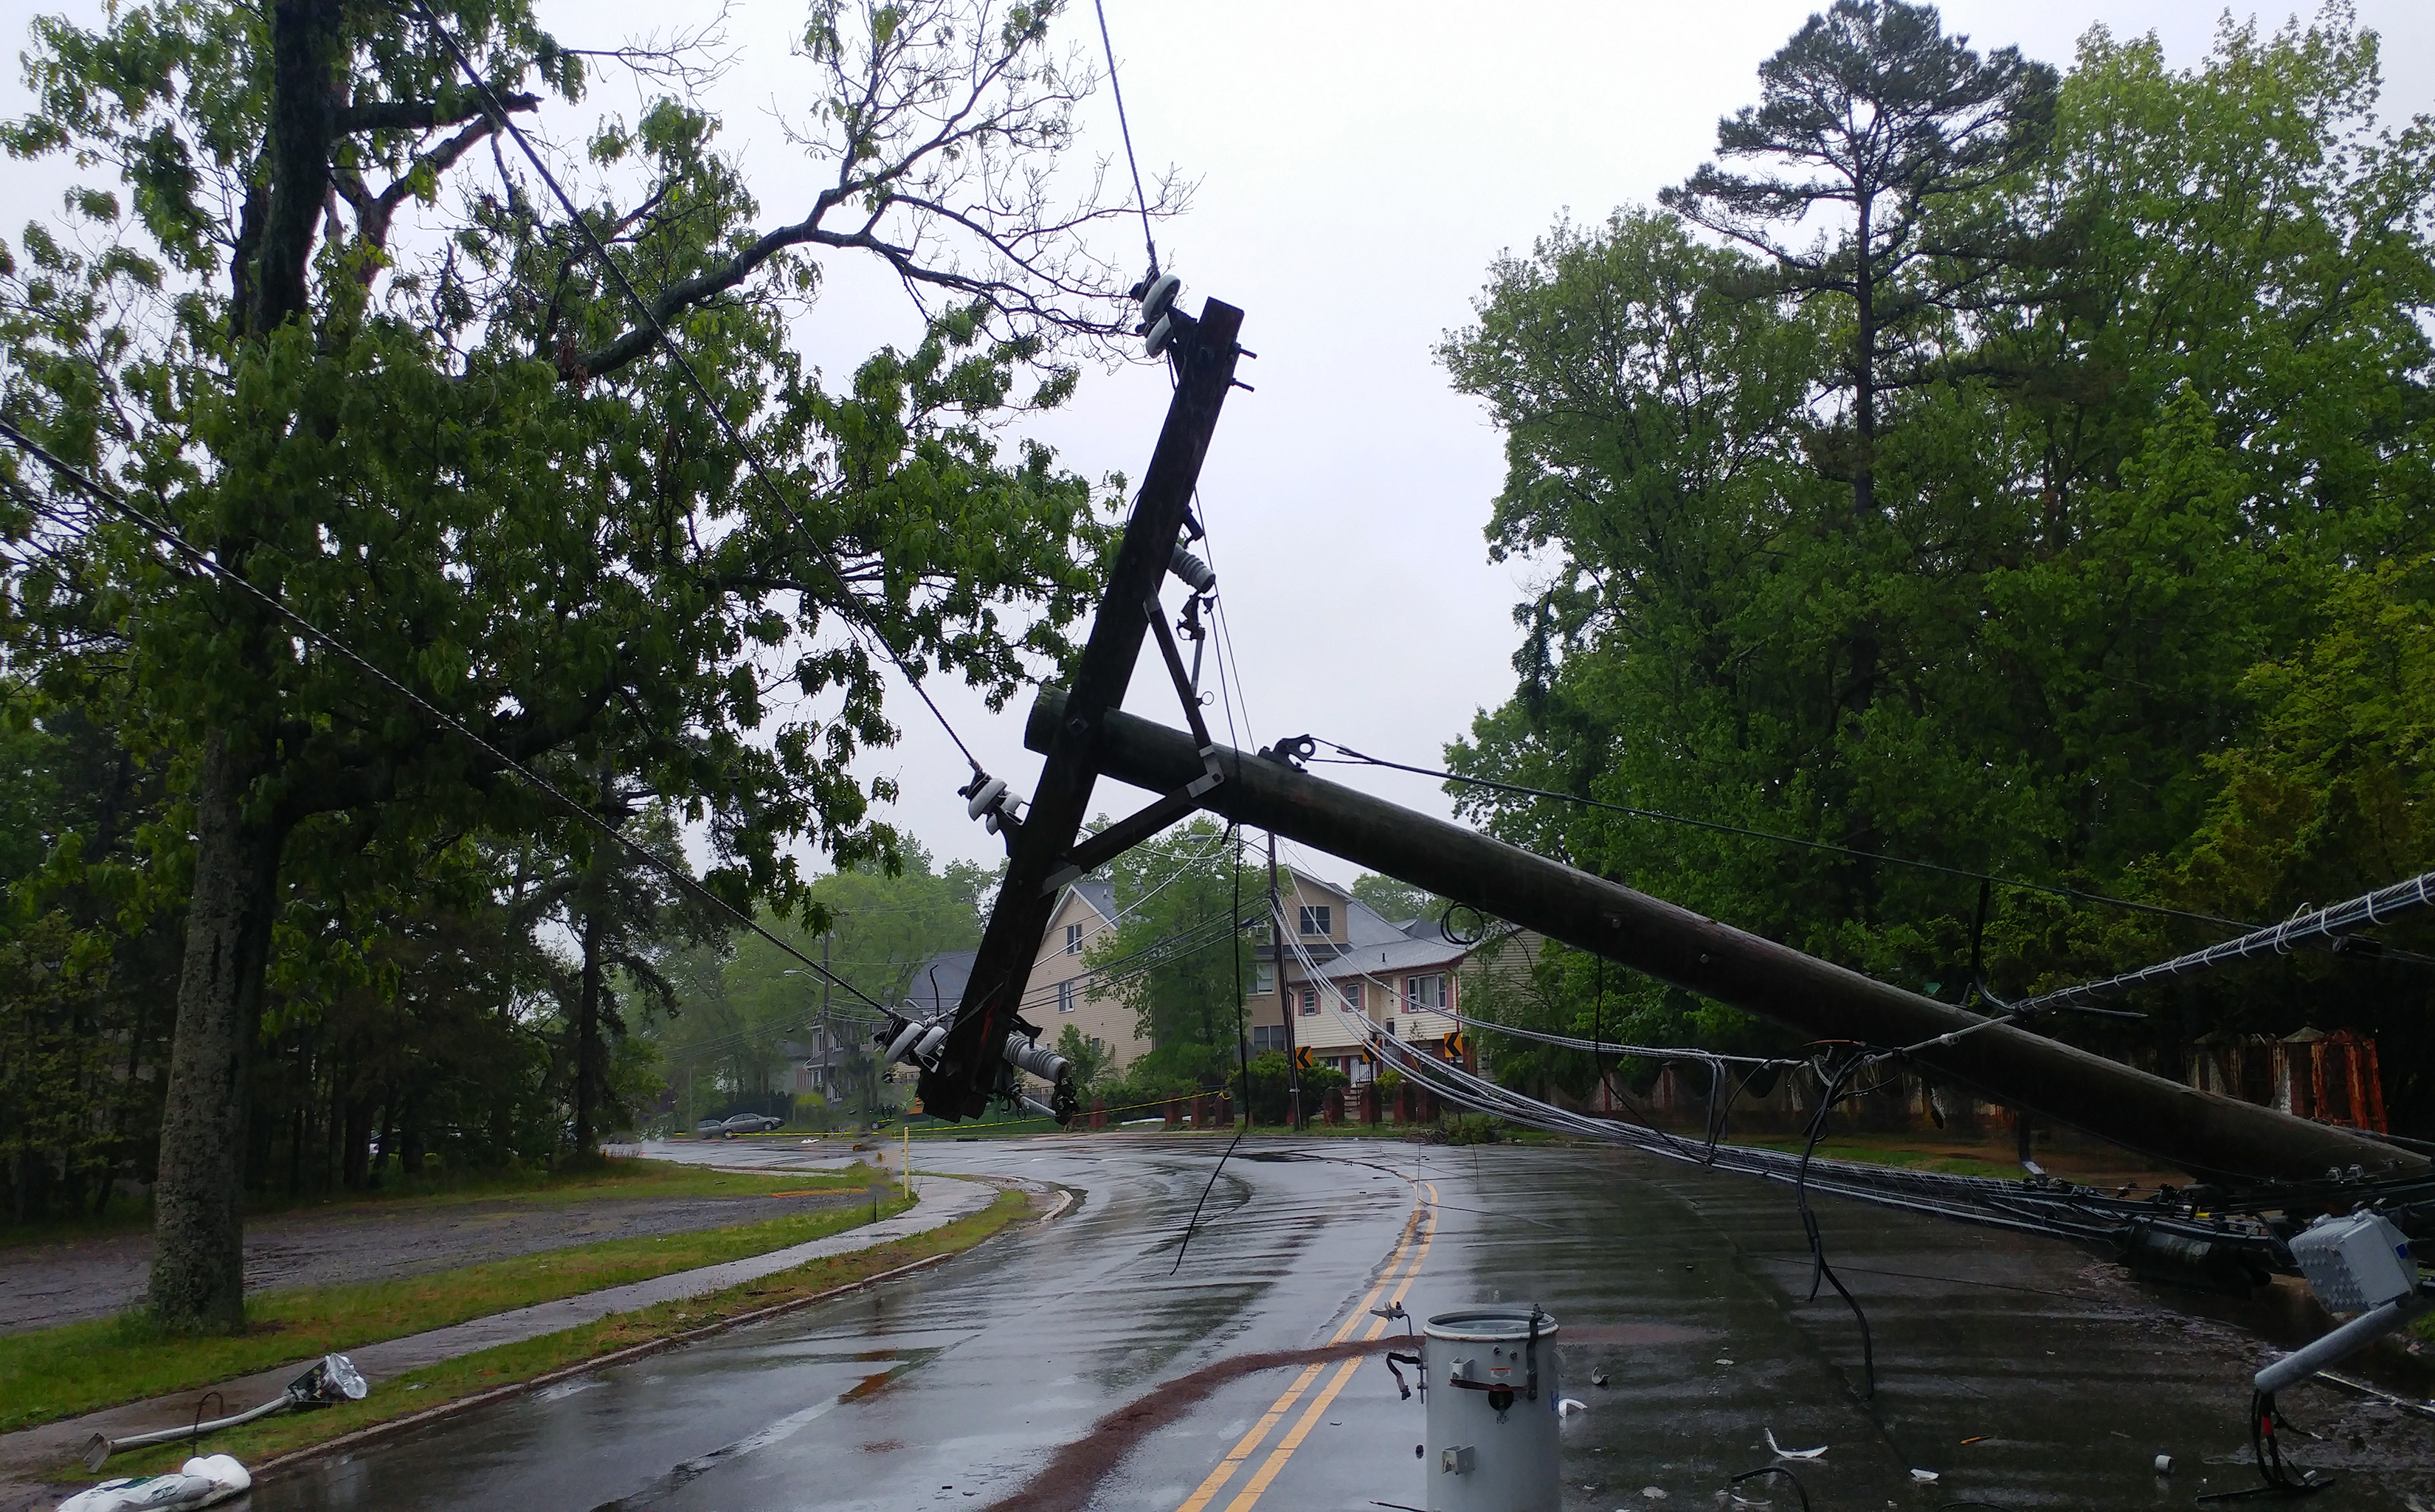 Storm damaged electric transformer on a pole and a tree